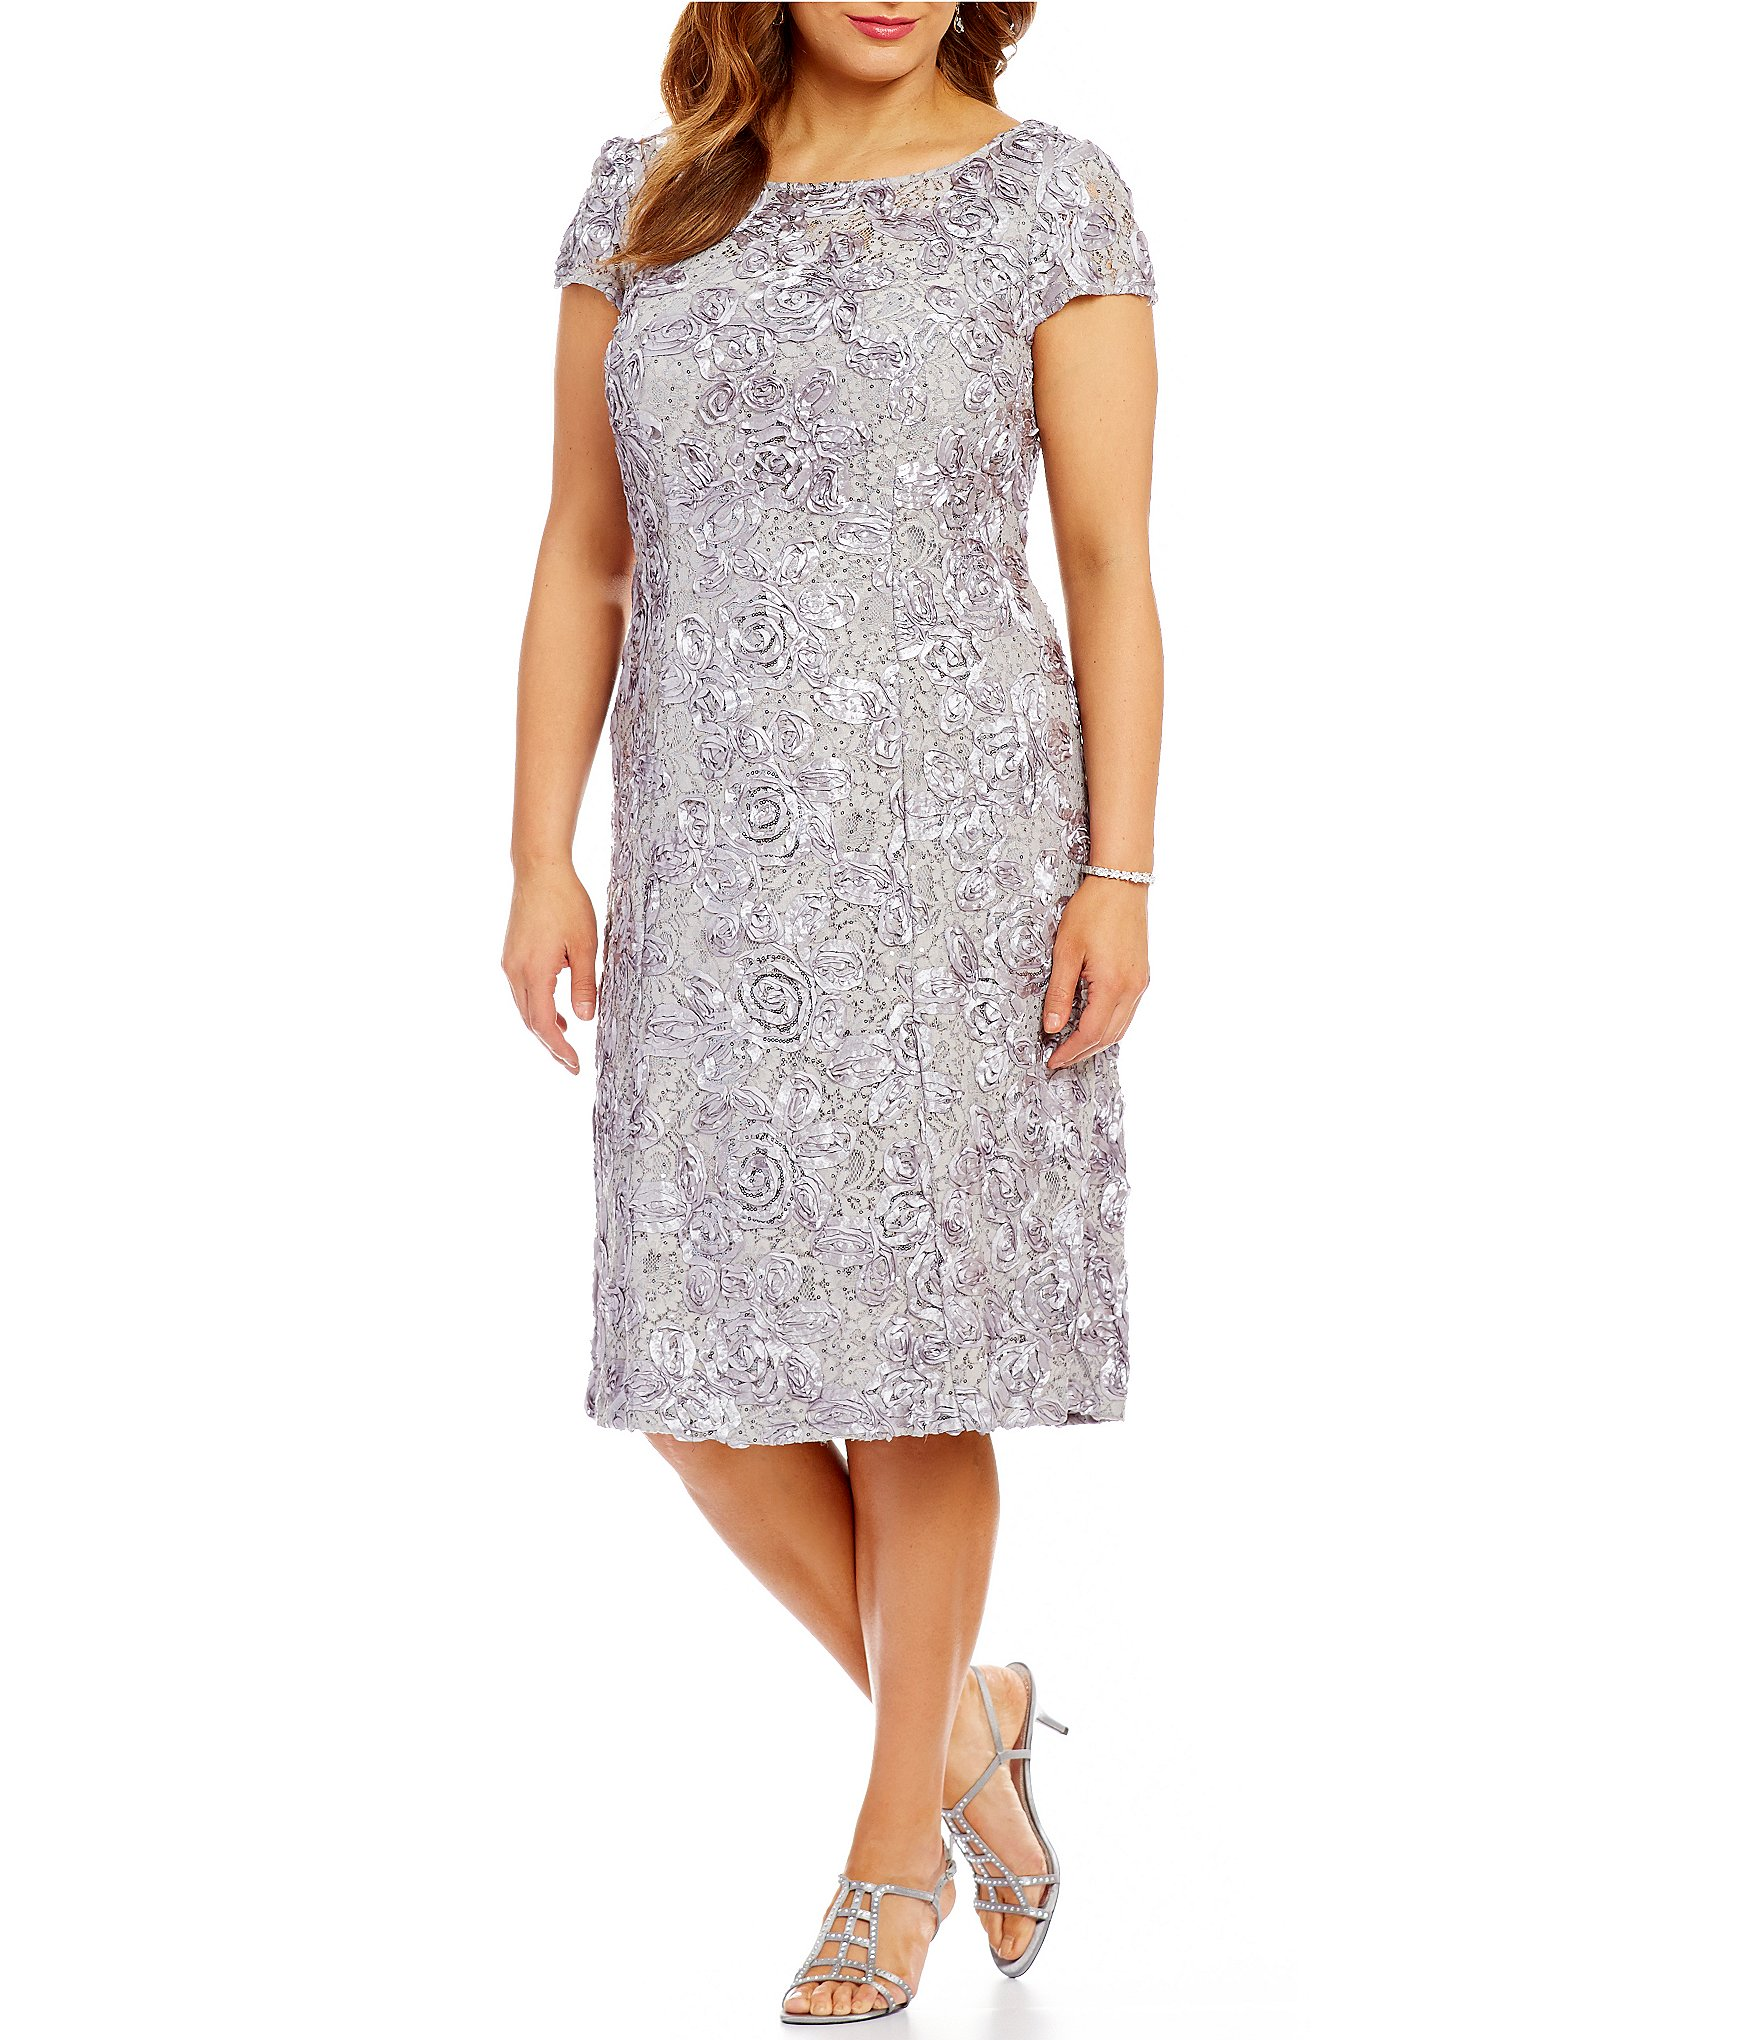 c5d26e60b21 Alex Evenings Cap Sleeve Plus Size Mother of the Bride Dresses   Gowns